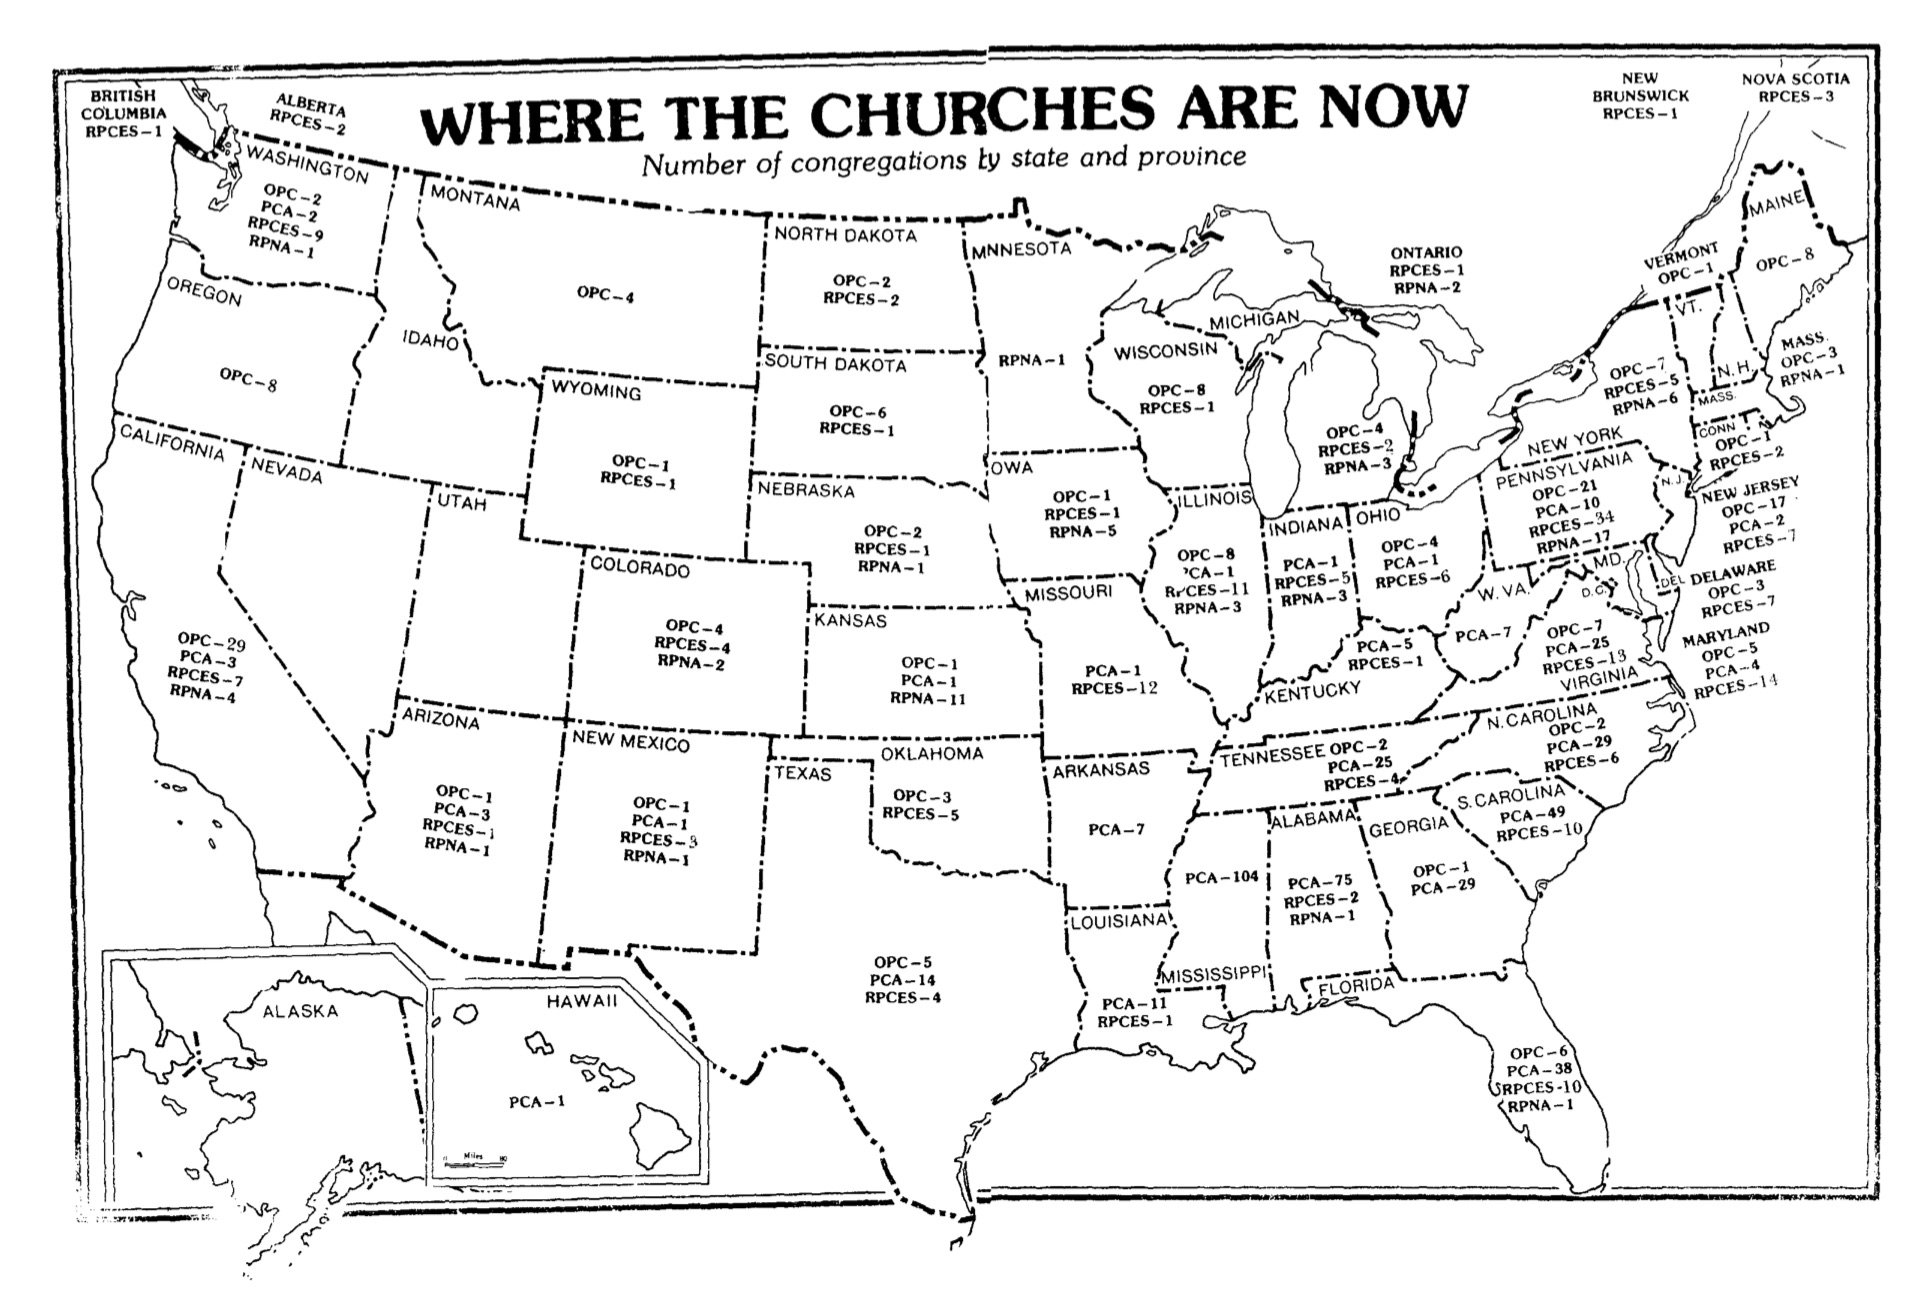 A map of the distribution of PCA, OPC, and RPCES congregations in 1979.